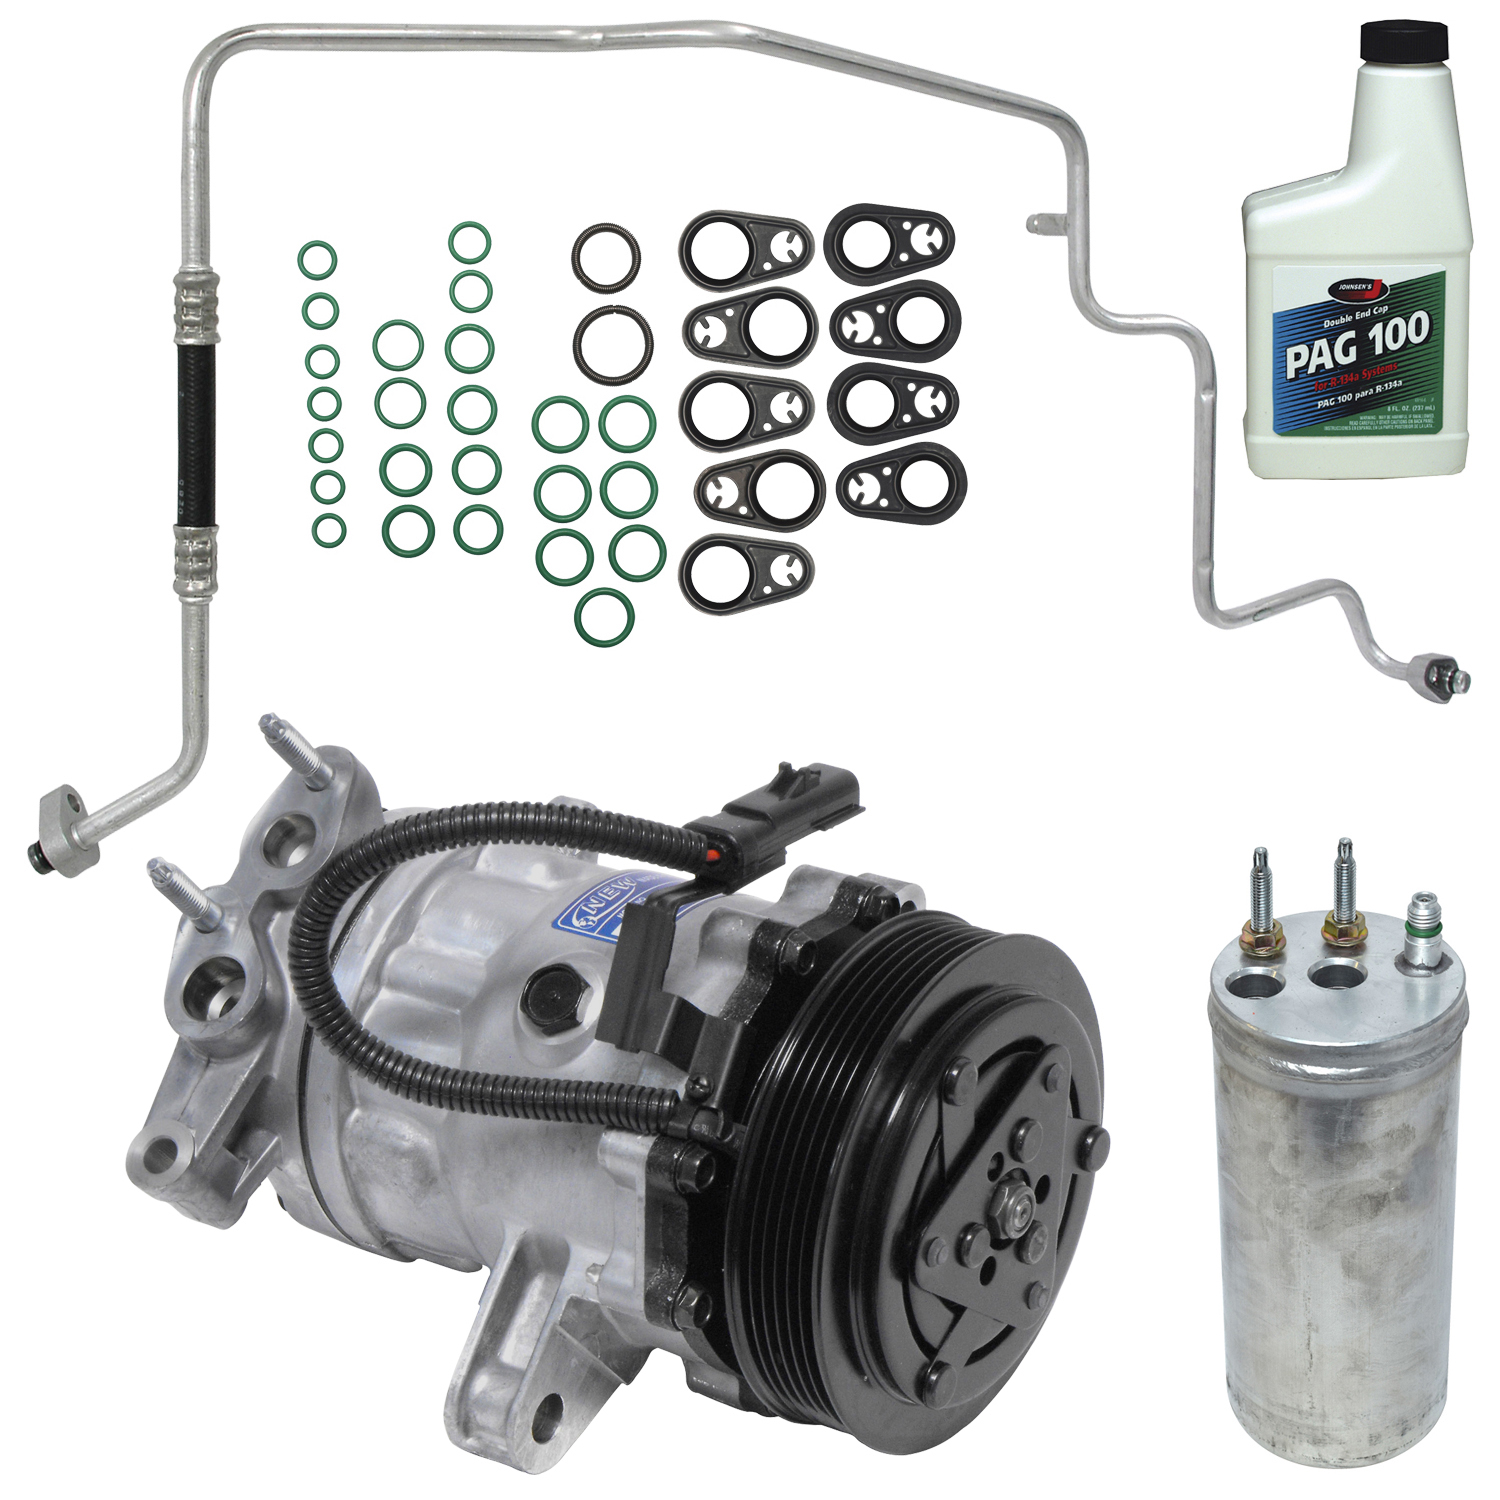 New A/C Compressor Kit KT 4174 - 55037466 Liberty